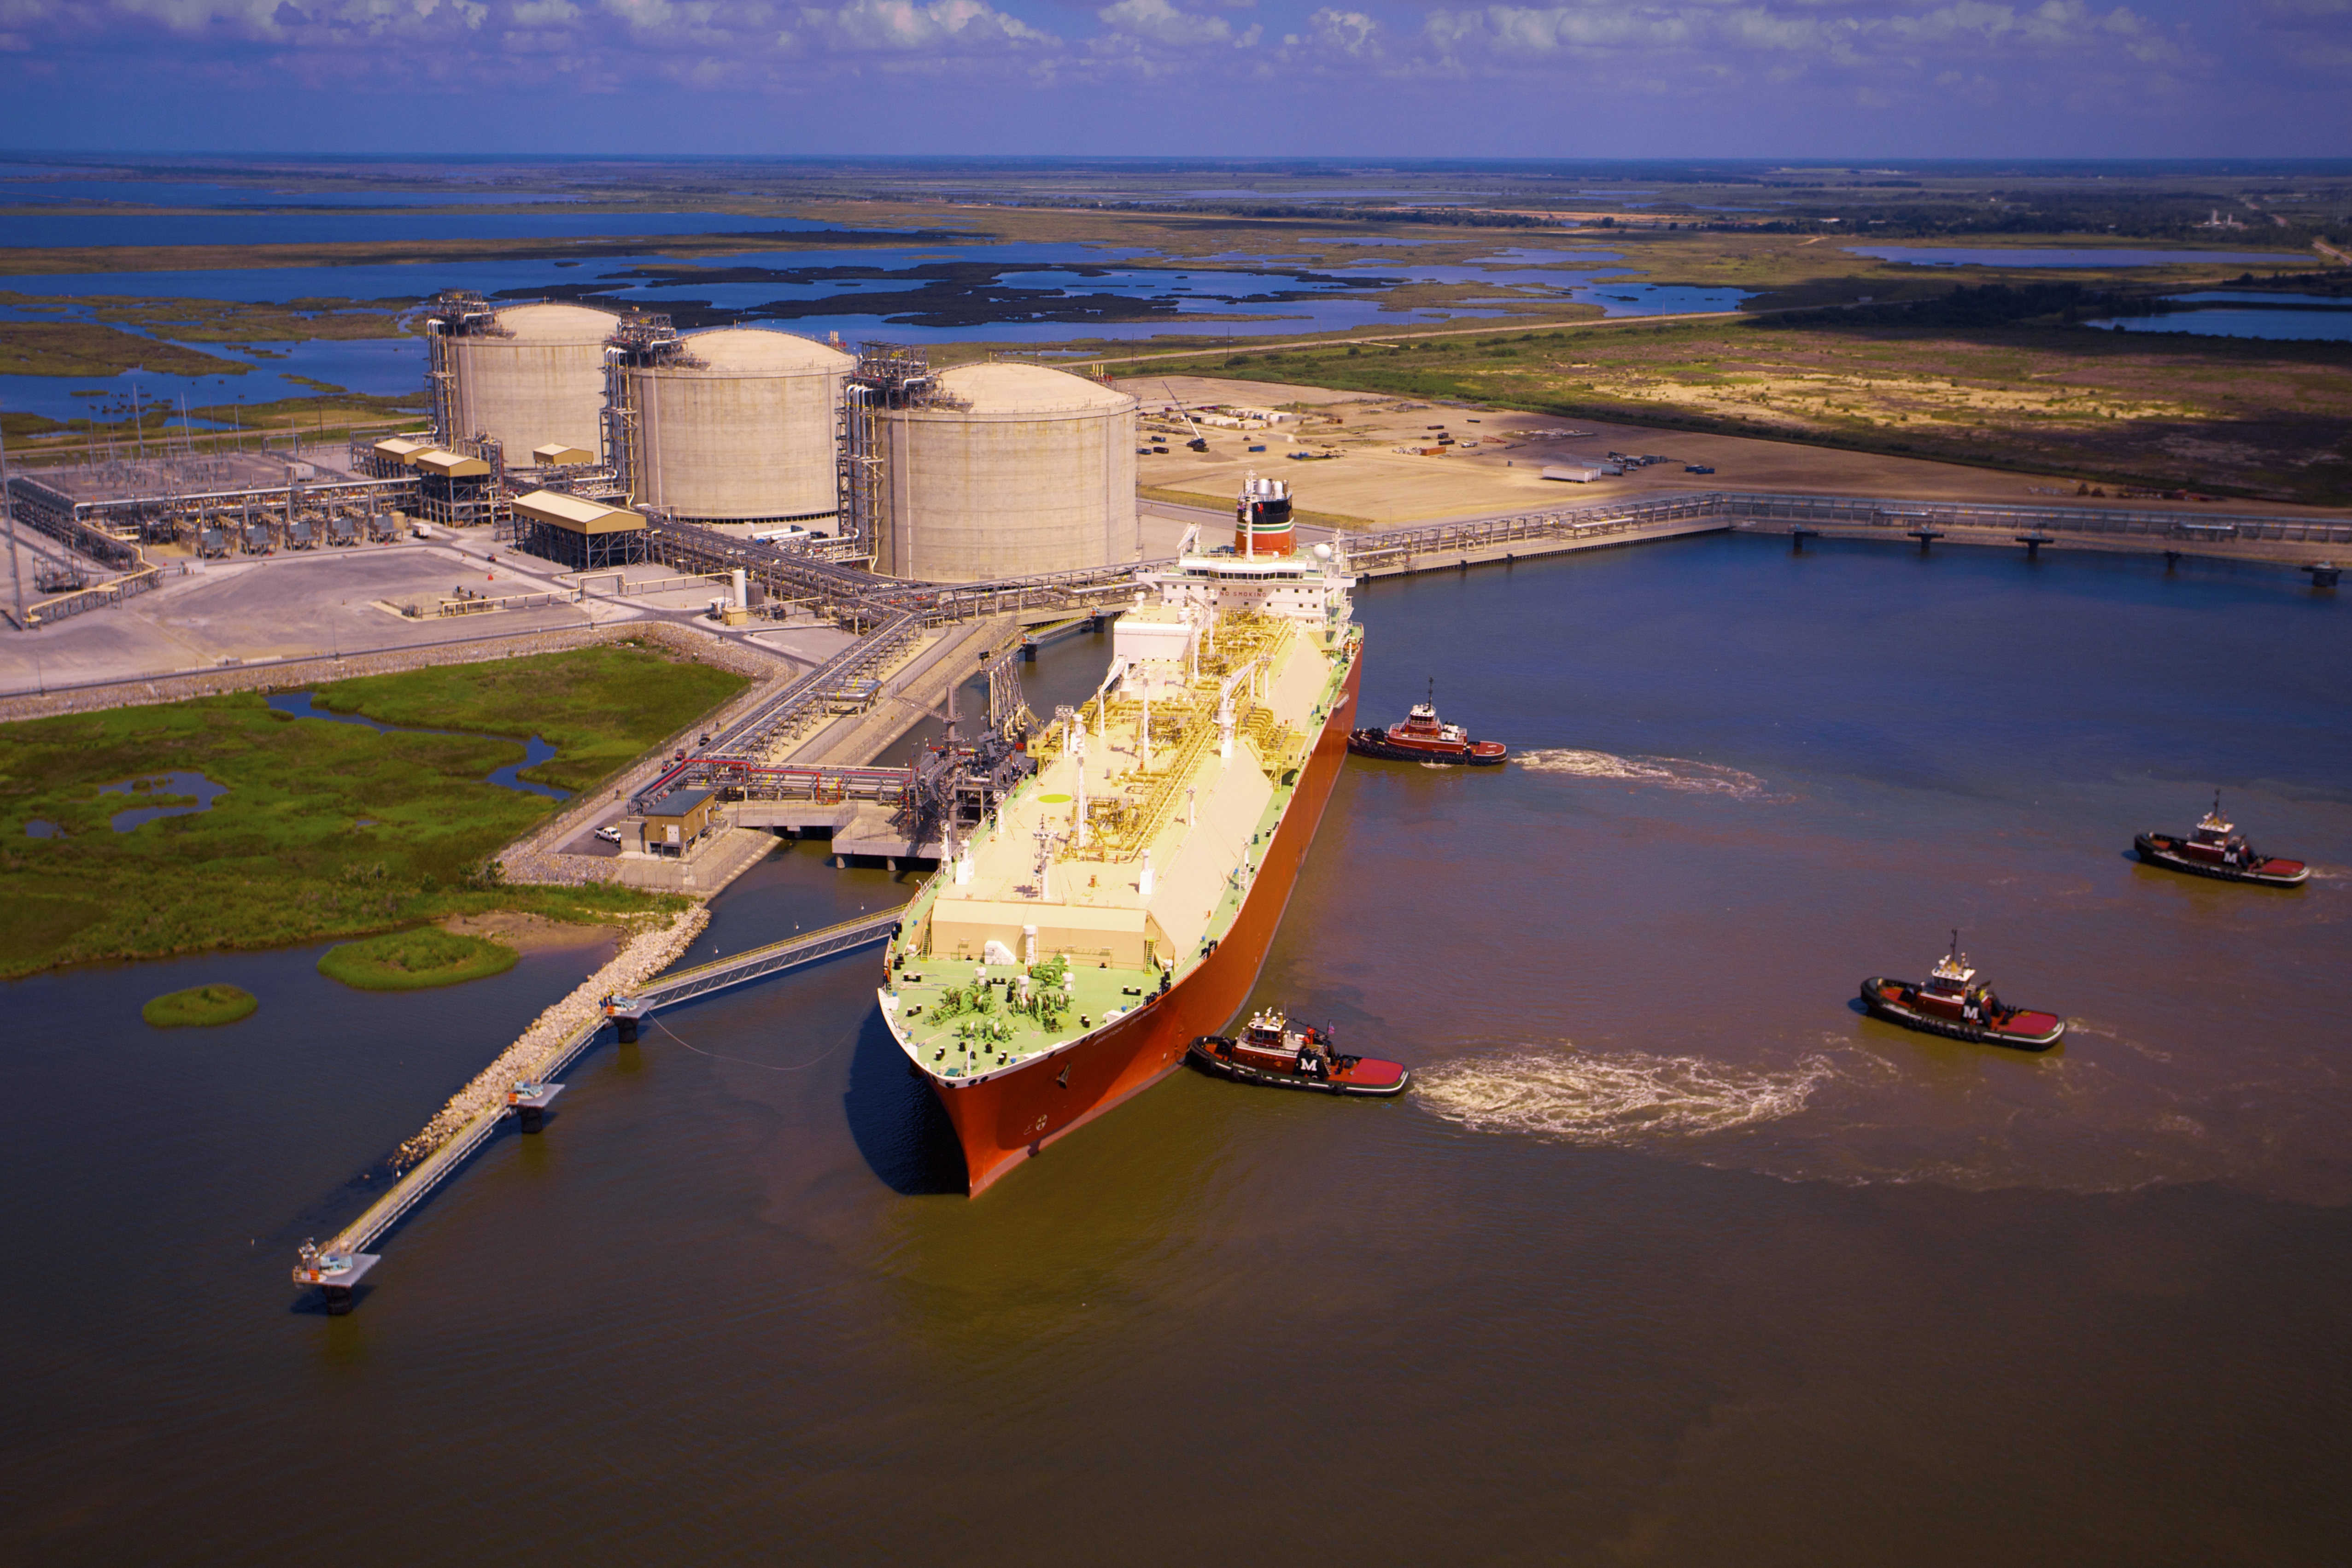 The Cameron LNG regasification terminal sits on an industrial-zoned site along the Calcasieu Channel in Hackberry, La., about 18 miles from the Gulf of Mexico and within 35 miles of five major interstate pipelines. (Source: Lonnie Duka/Sempra LNG)